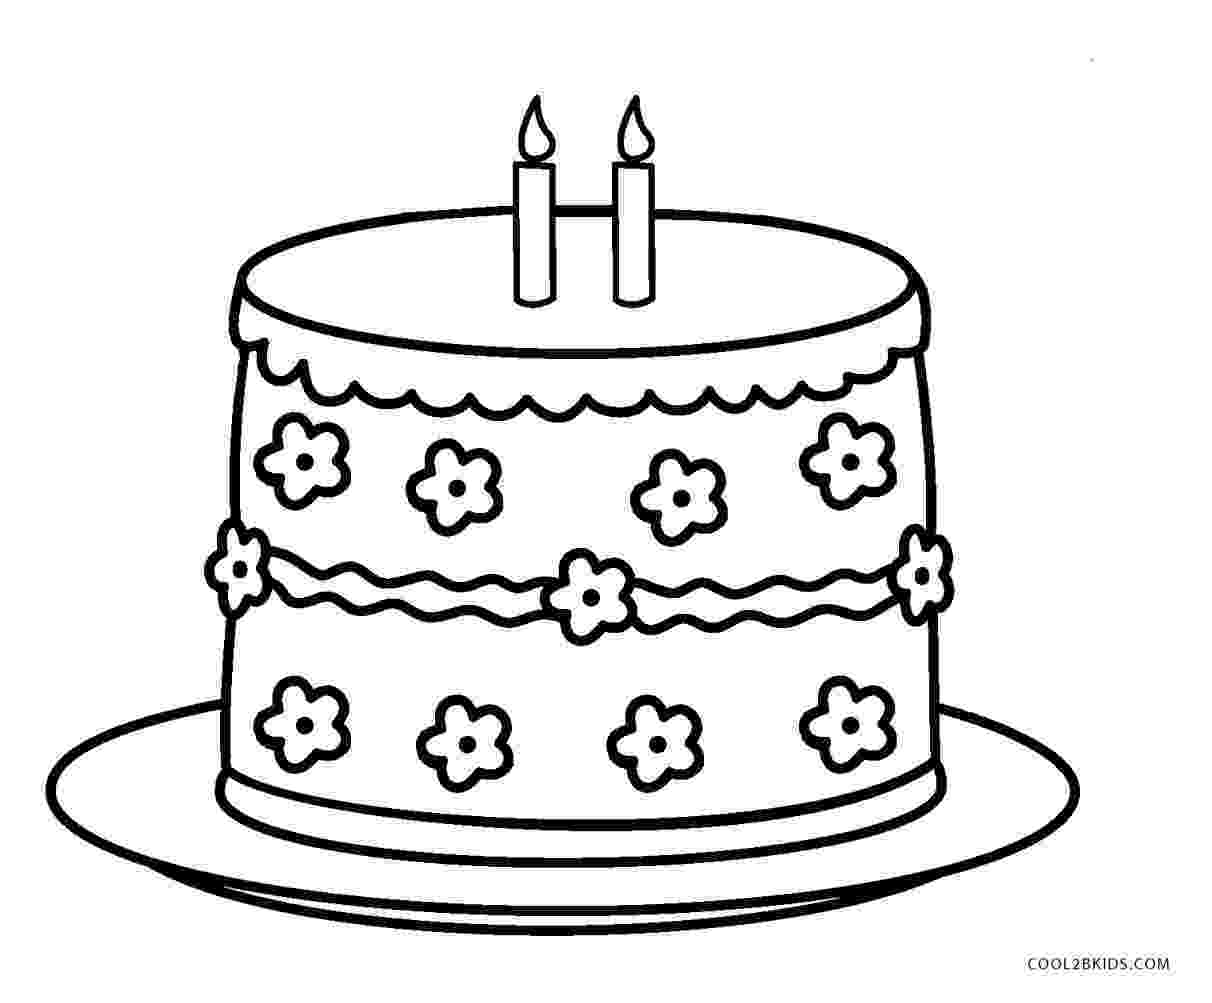 coloring page of a birthday cake free printable birthday cake coloring pages for kids a coloring cake birthday page of